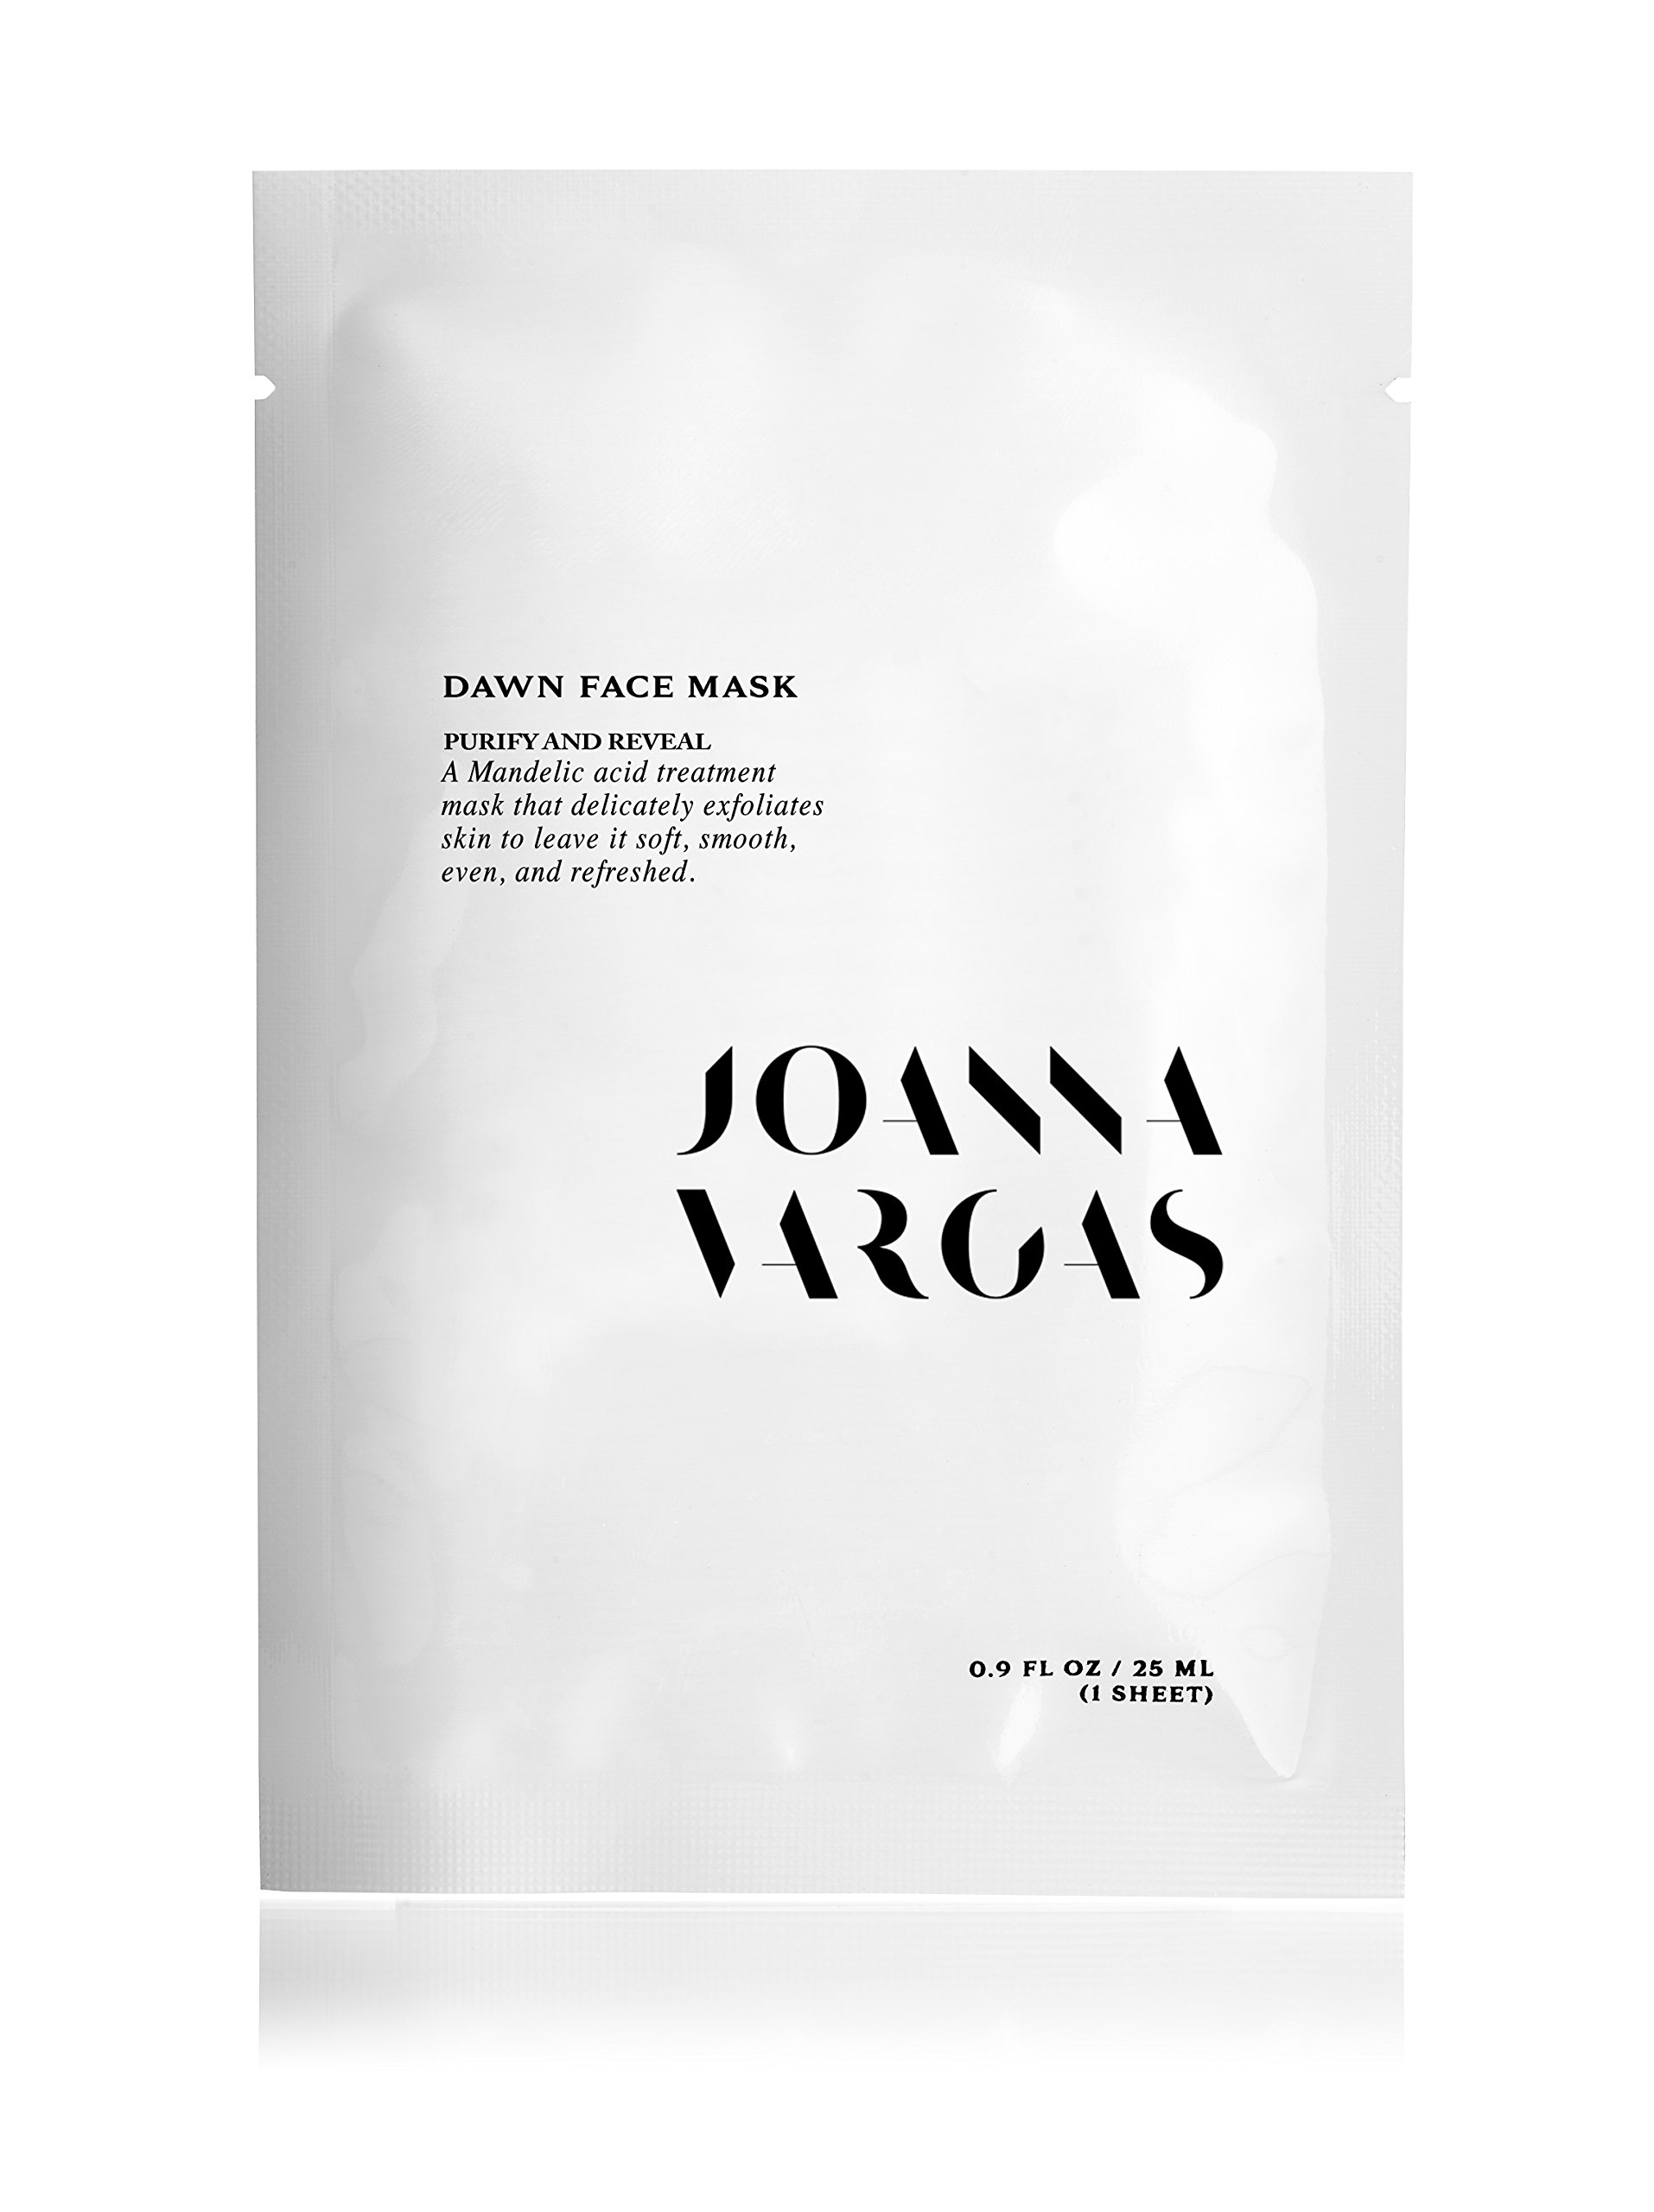 The Joanna Vargas Dawn Face Mask Is A Mandelic Acid Treatment That Will Delicately Exfoliate Your Complexion Leaving It Soft, Even Skin Tone and Refreshed. by Joanna Vargas Skin Care